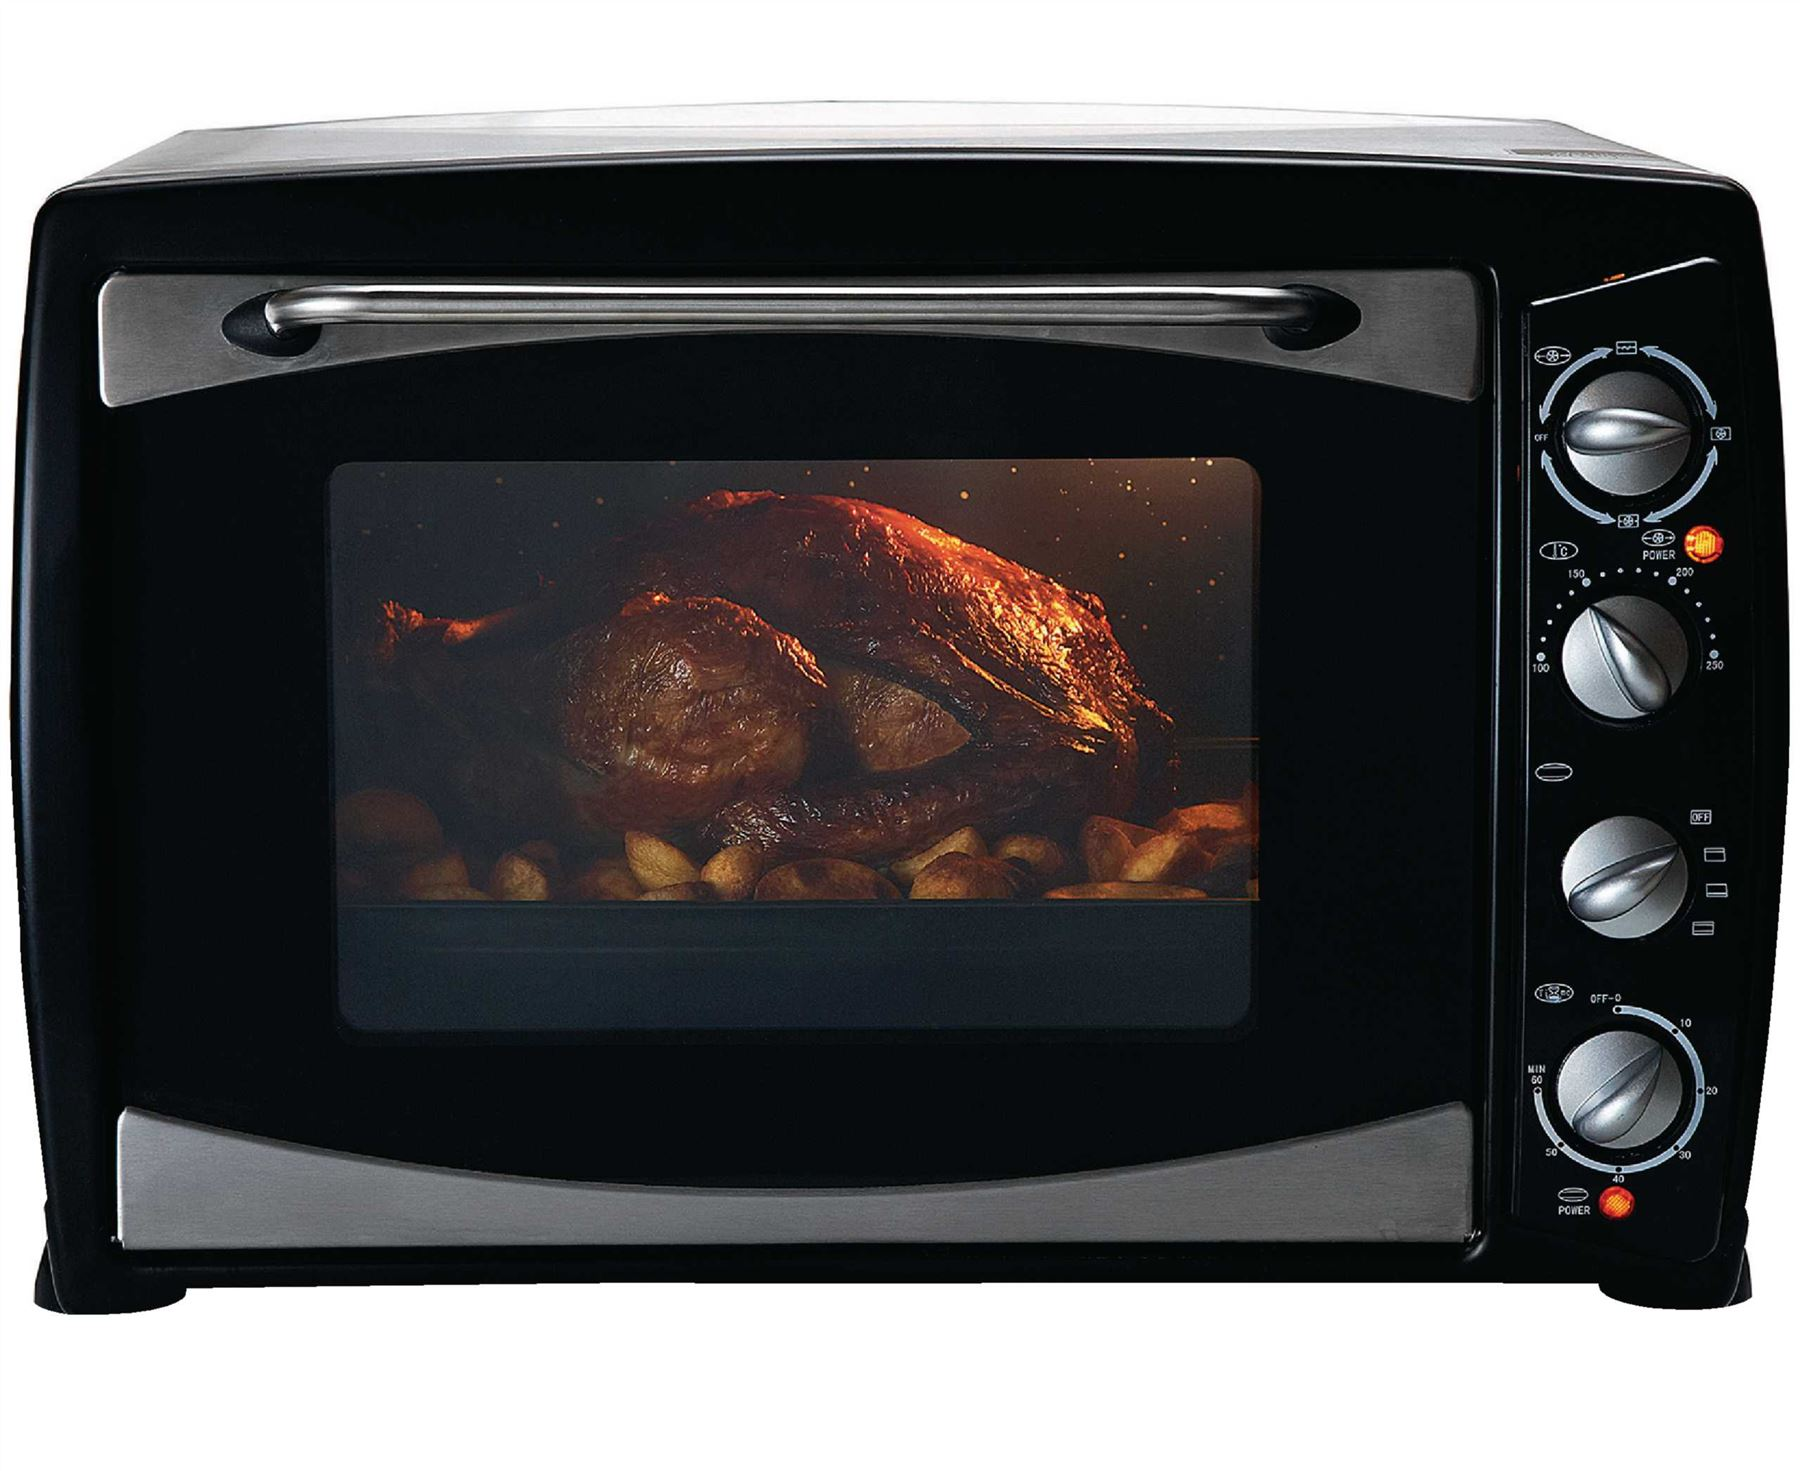 Compact Oven With Two Ring Hob 50 Litre Convection Grill Toaster ...